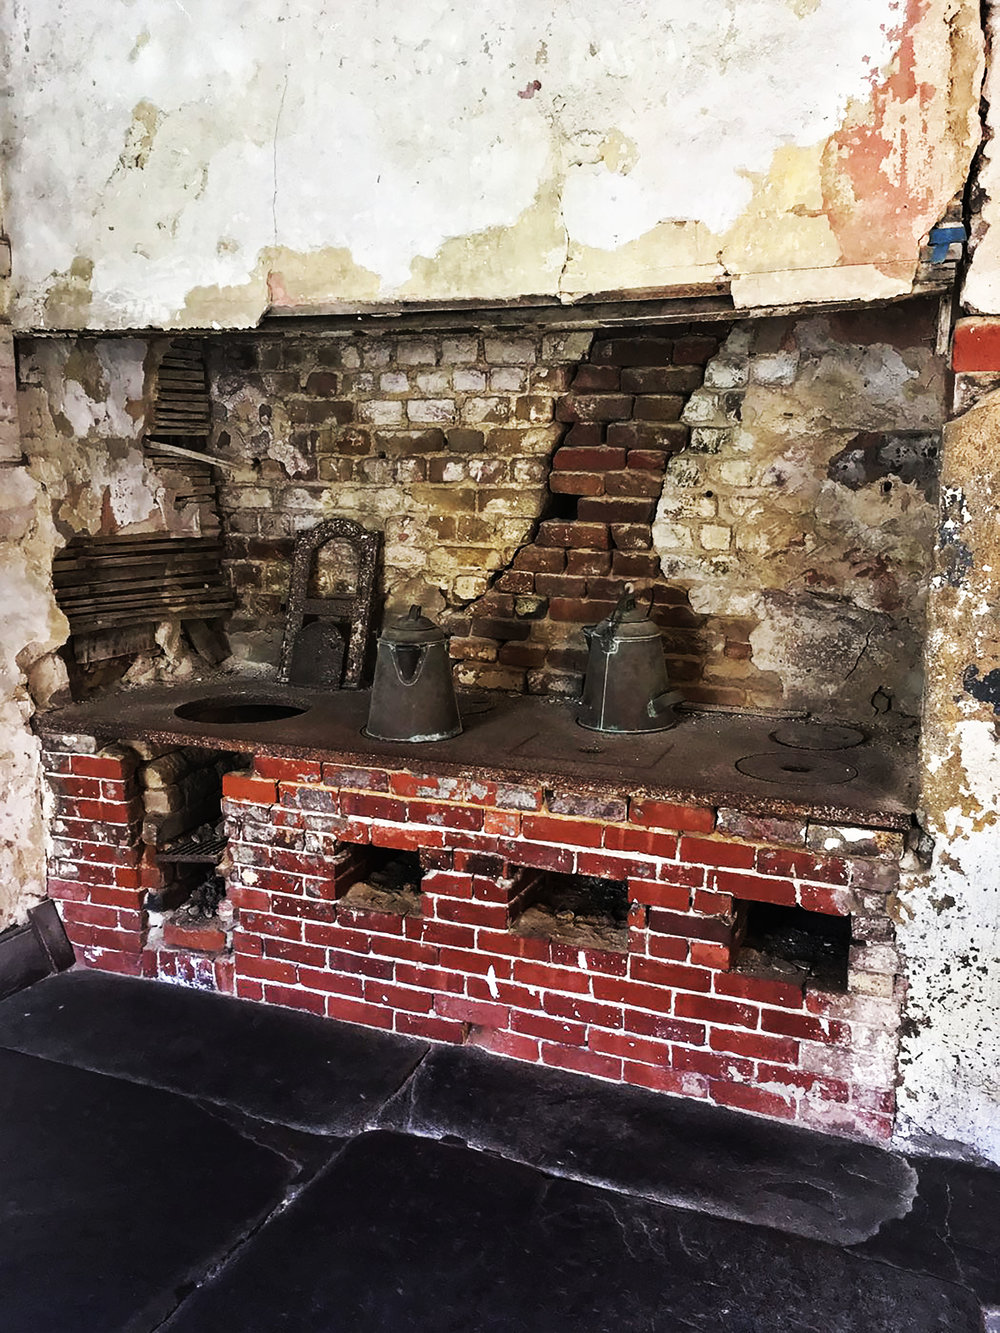 Aiken Rhett House Slave Quarters: Stove on first floor